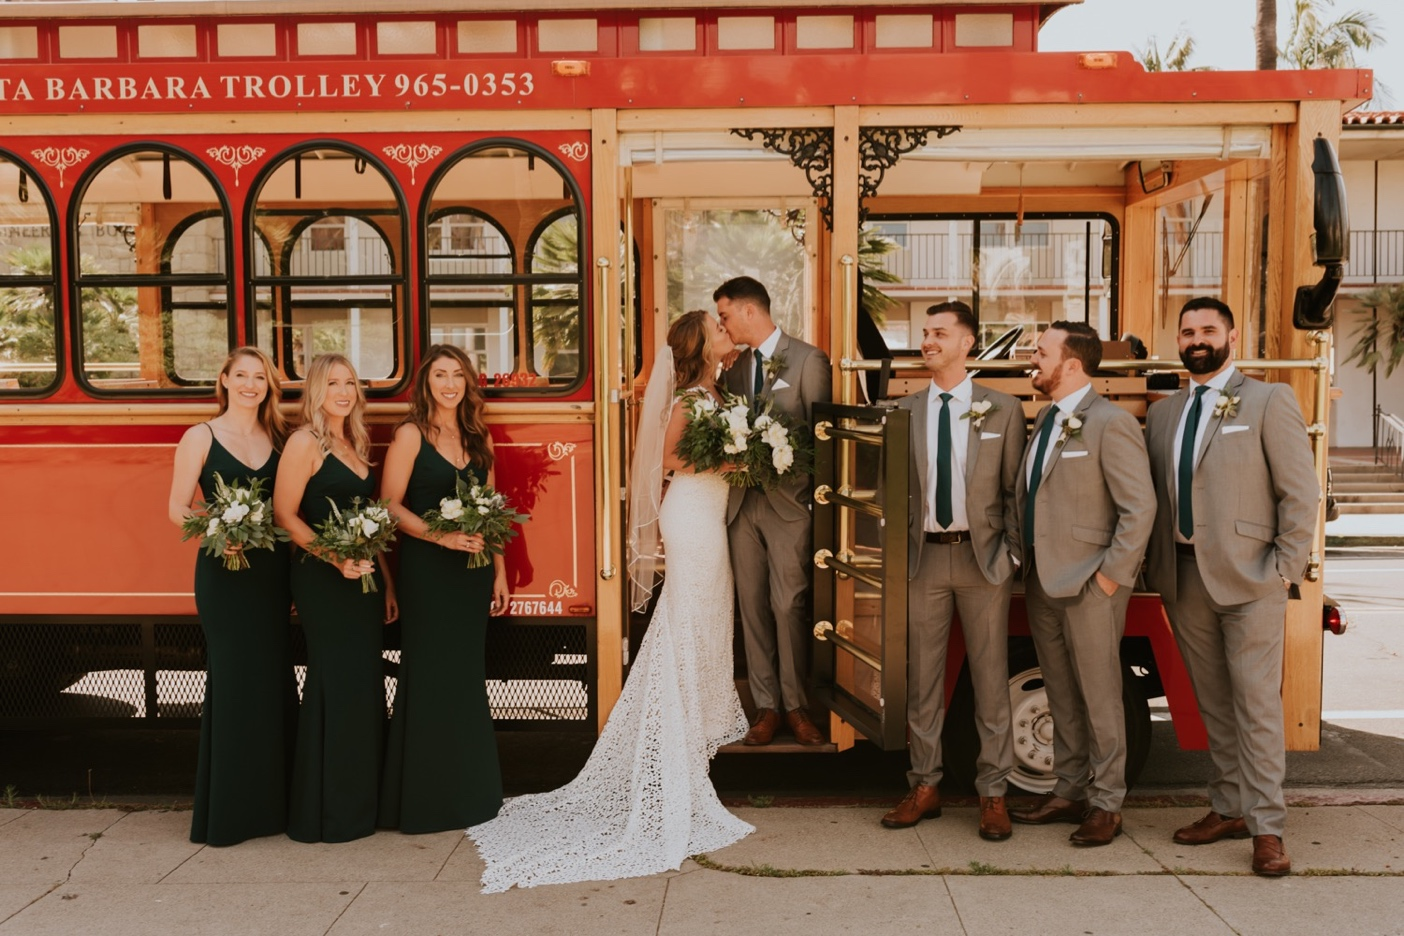 Bride and Groom on Trolley Car with wedding party on both sides. Santa Barbara Courthouse Wedding.